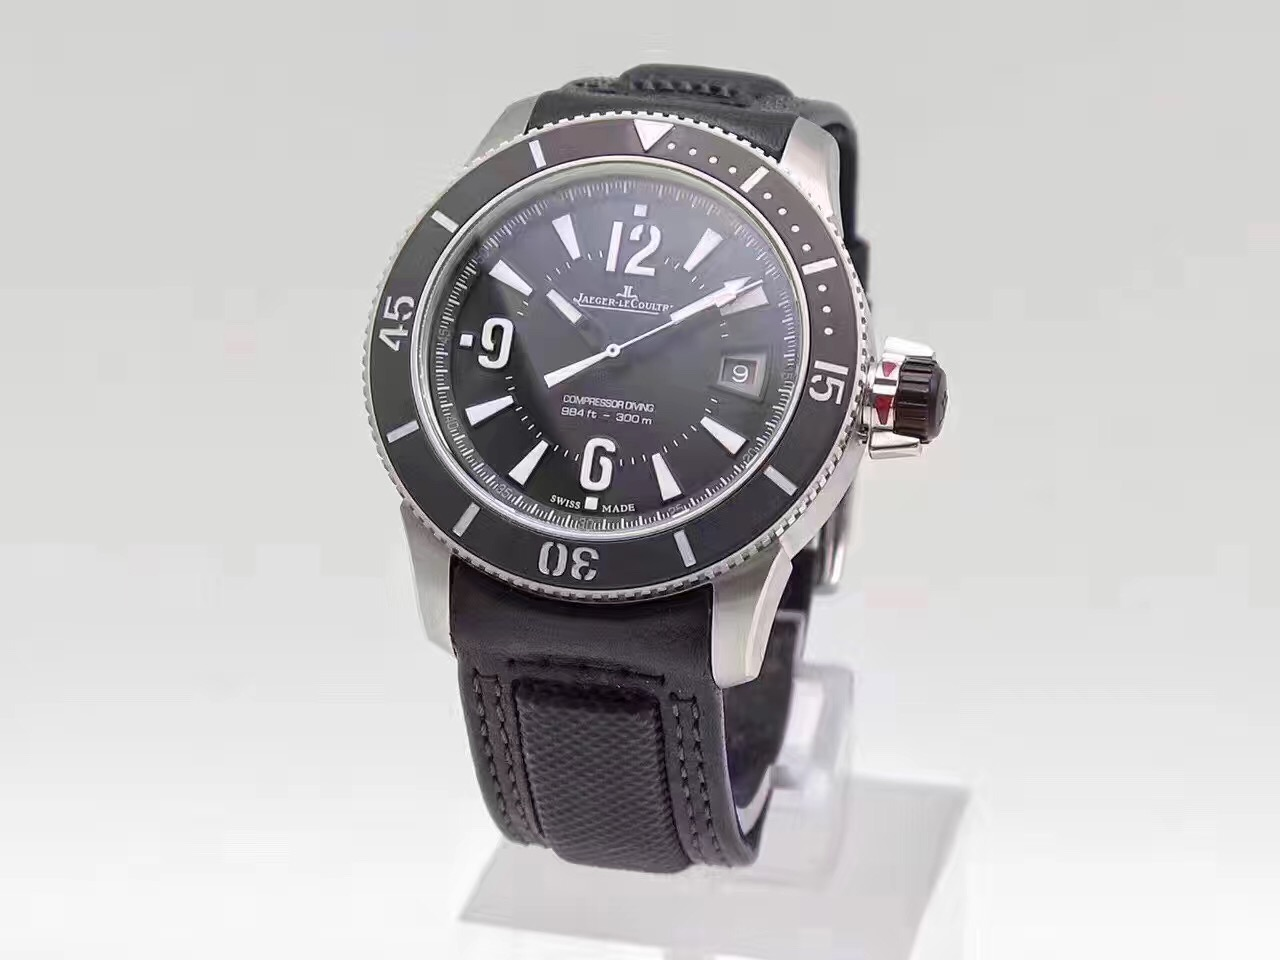 Jeager LeCoultre Master Compressor Diving